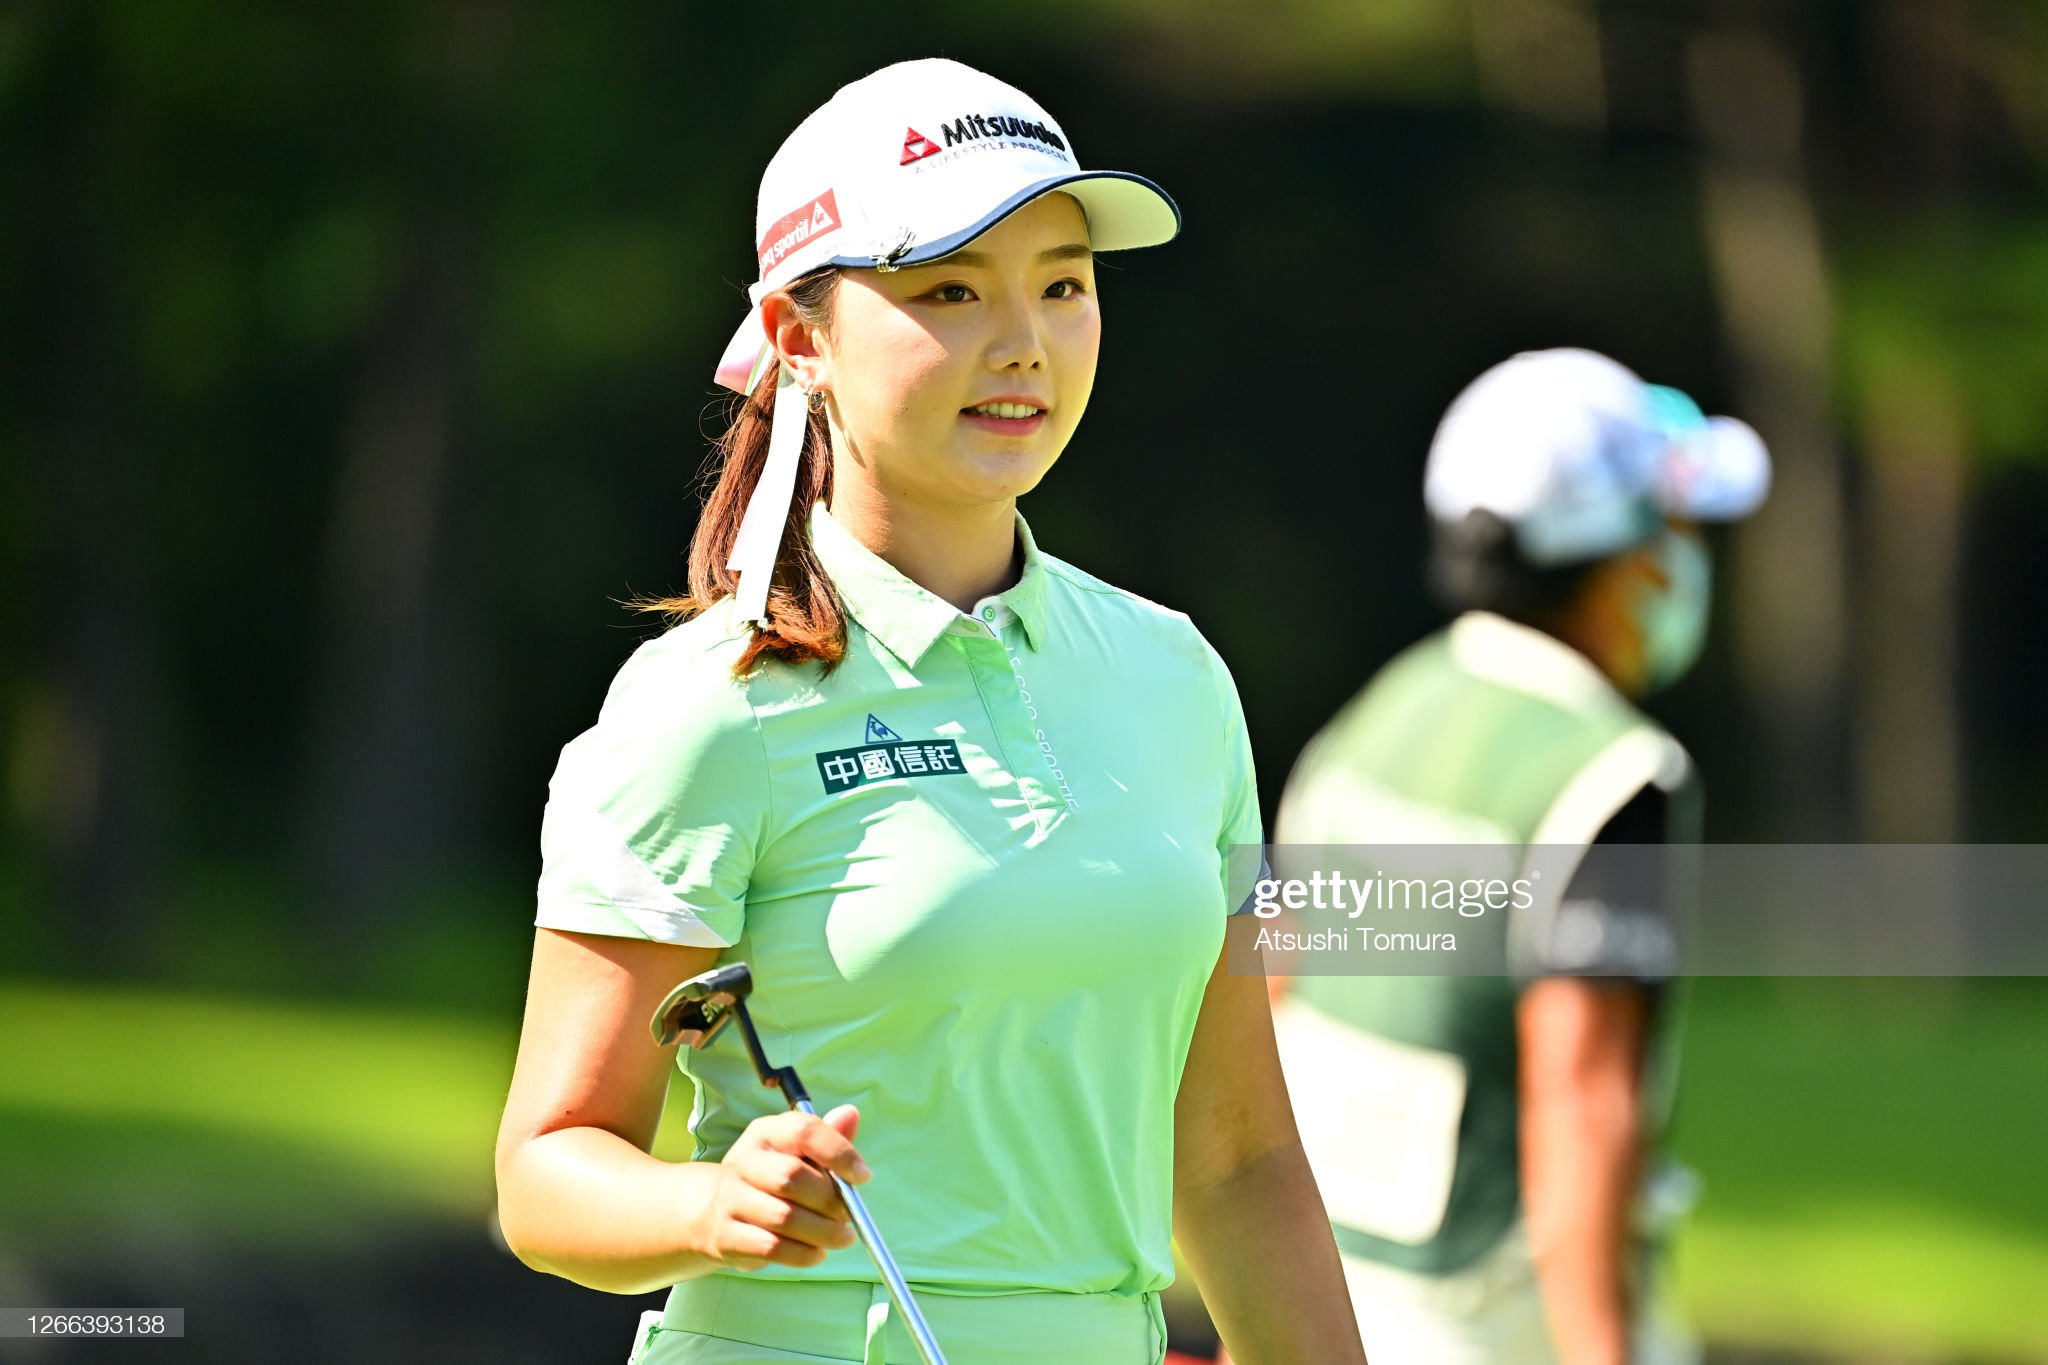 https://media.gettyimages.com/photos/yuting-seki-of-china-is-seen-after-holing-out-on-the-18th-green-the-picture-id1266393138?s=2048x2048